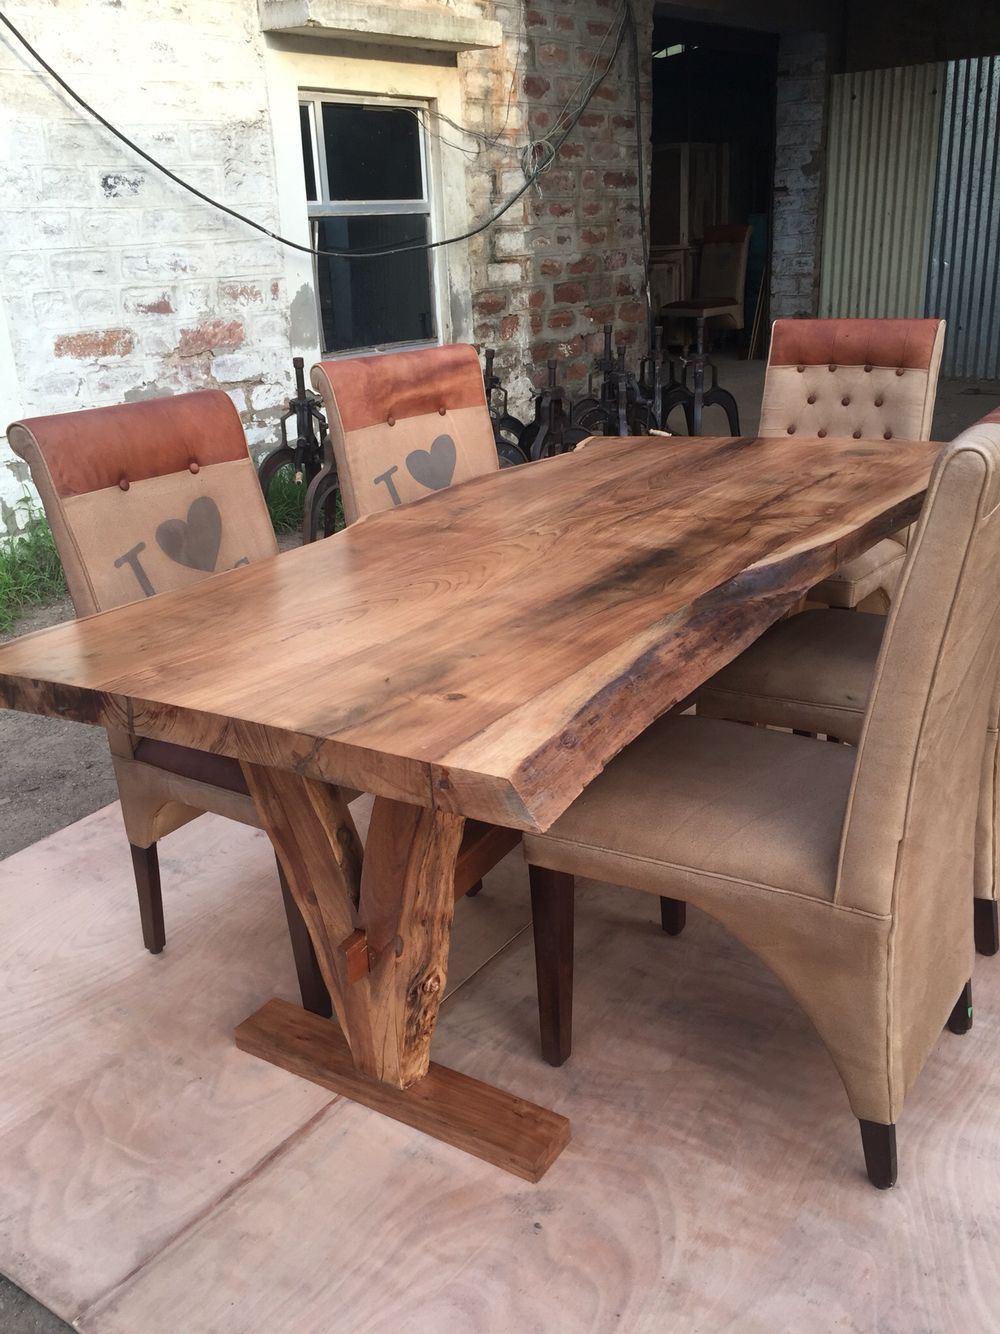 Yosemite live edge table acacia solid wood solid wood for Wooden tabletop kitchen